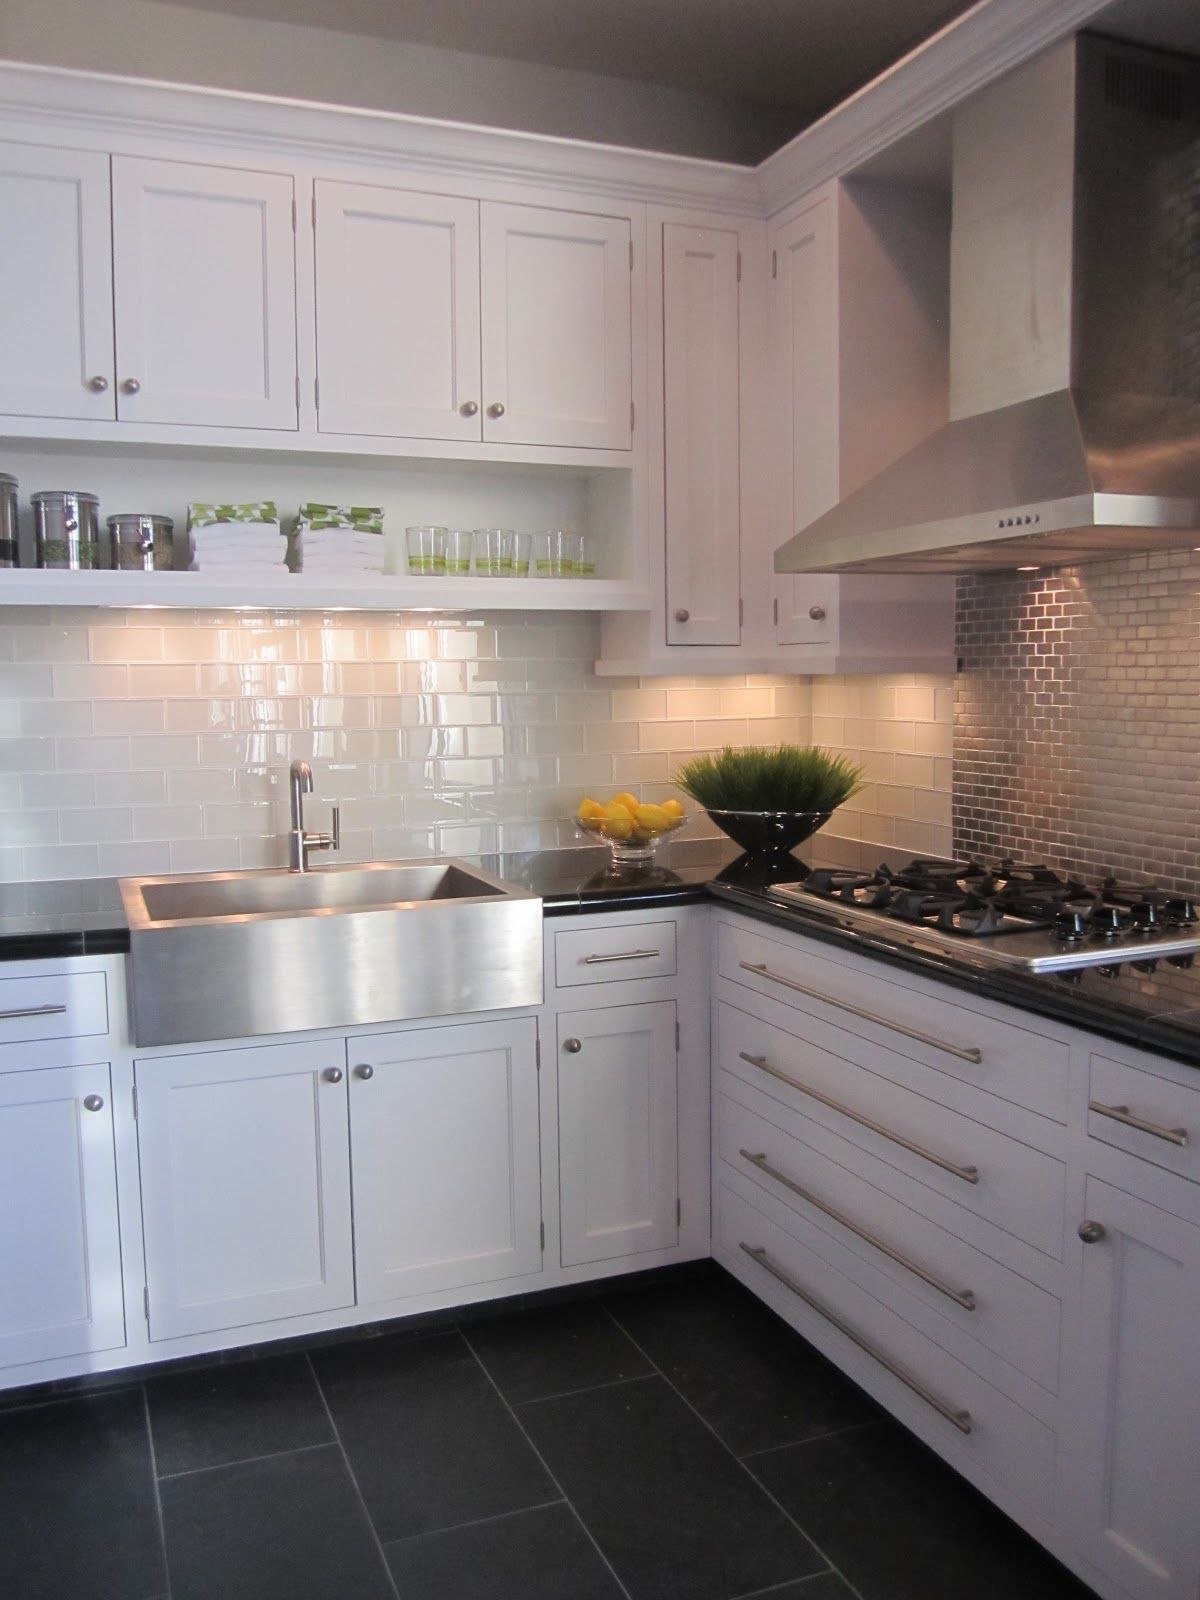 Kitchen white cabinet dark grey floor tiles lovely kitchens white shaker cabinets marble countertops white subway tile and open shelving dailygadgetfo Image collections